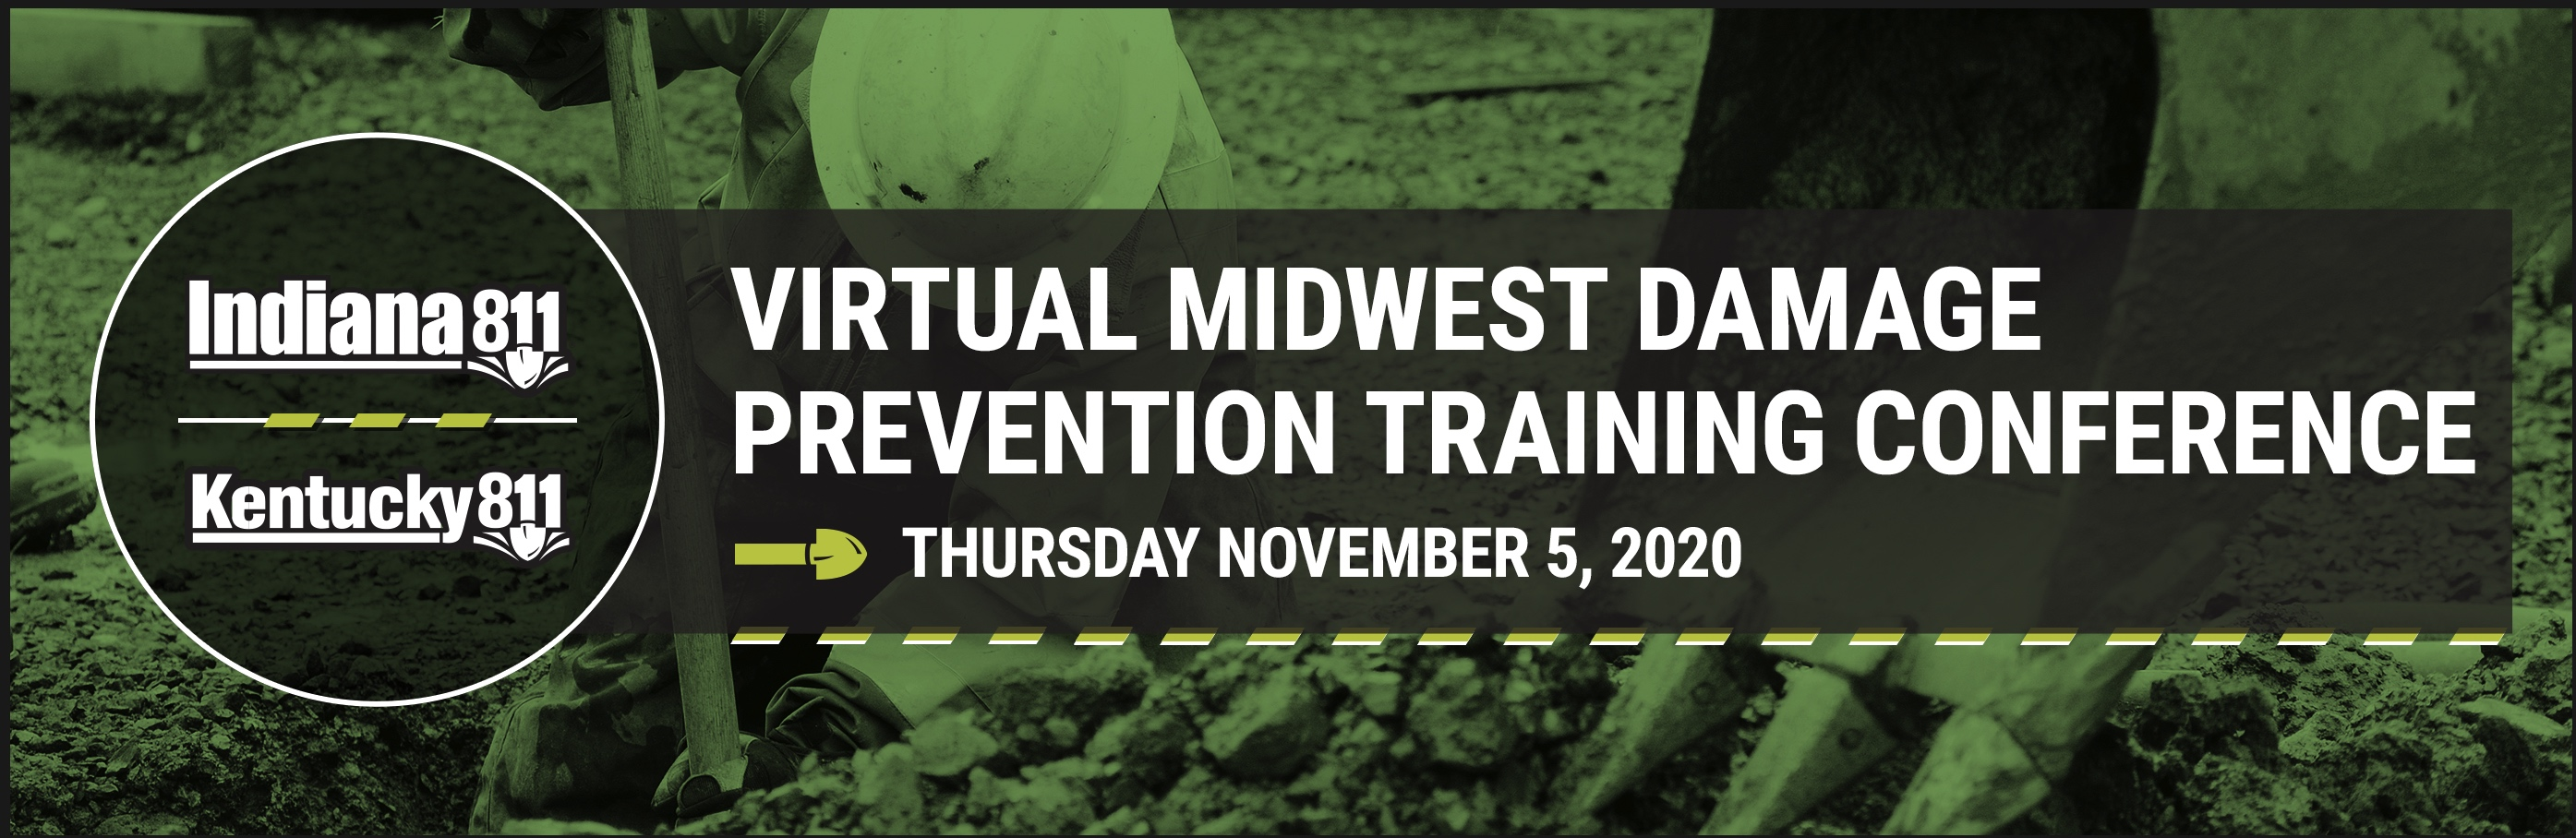 2020 Virtual Midwest Damage Prevention Training Conference